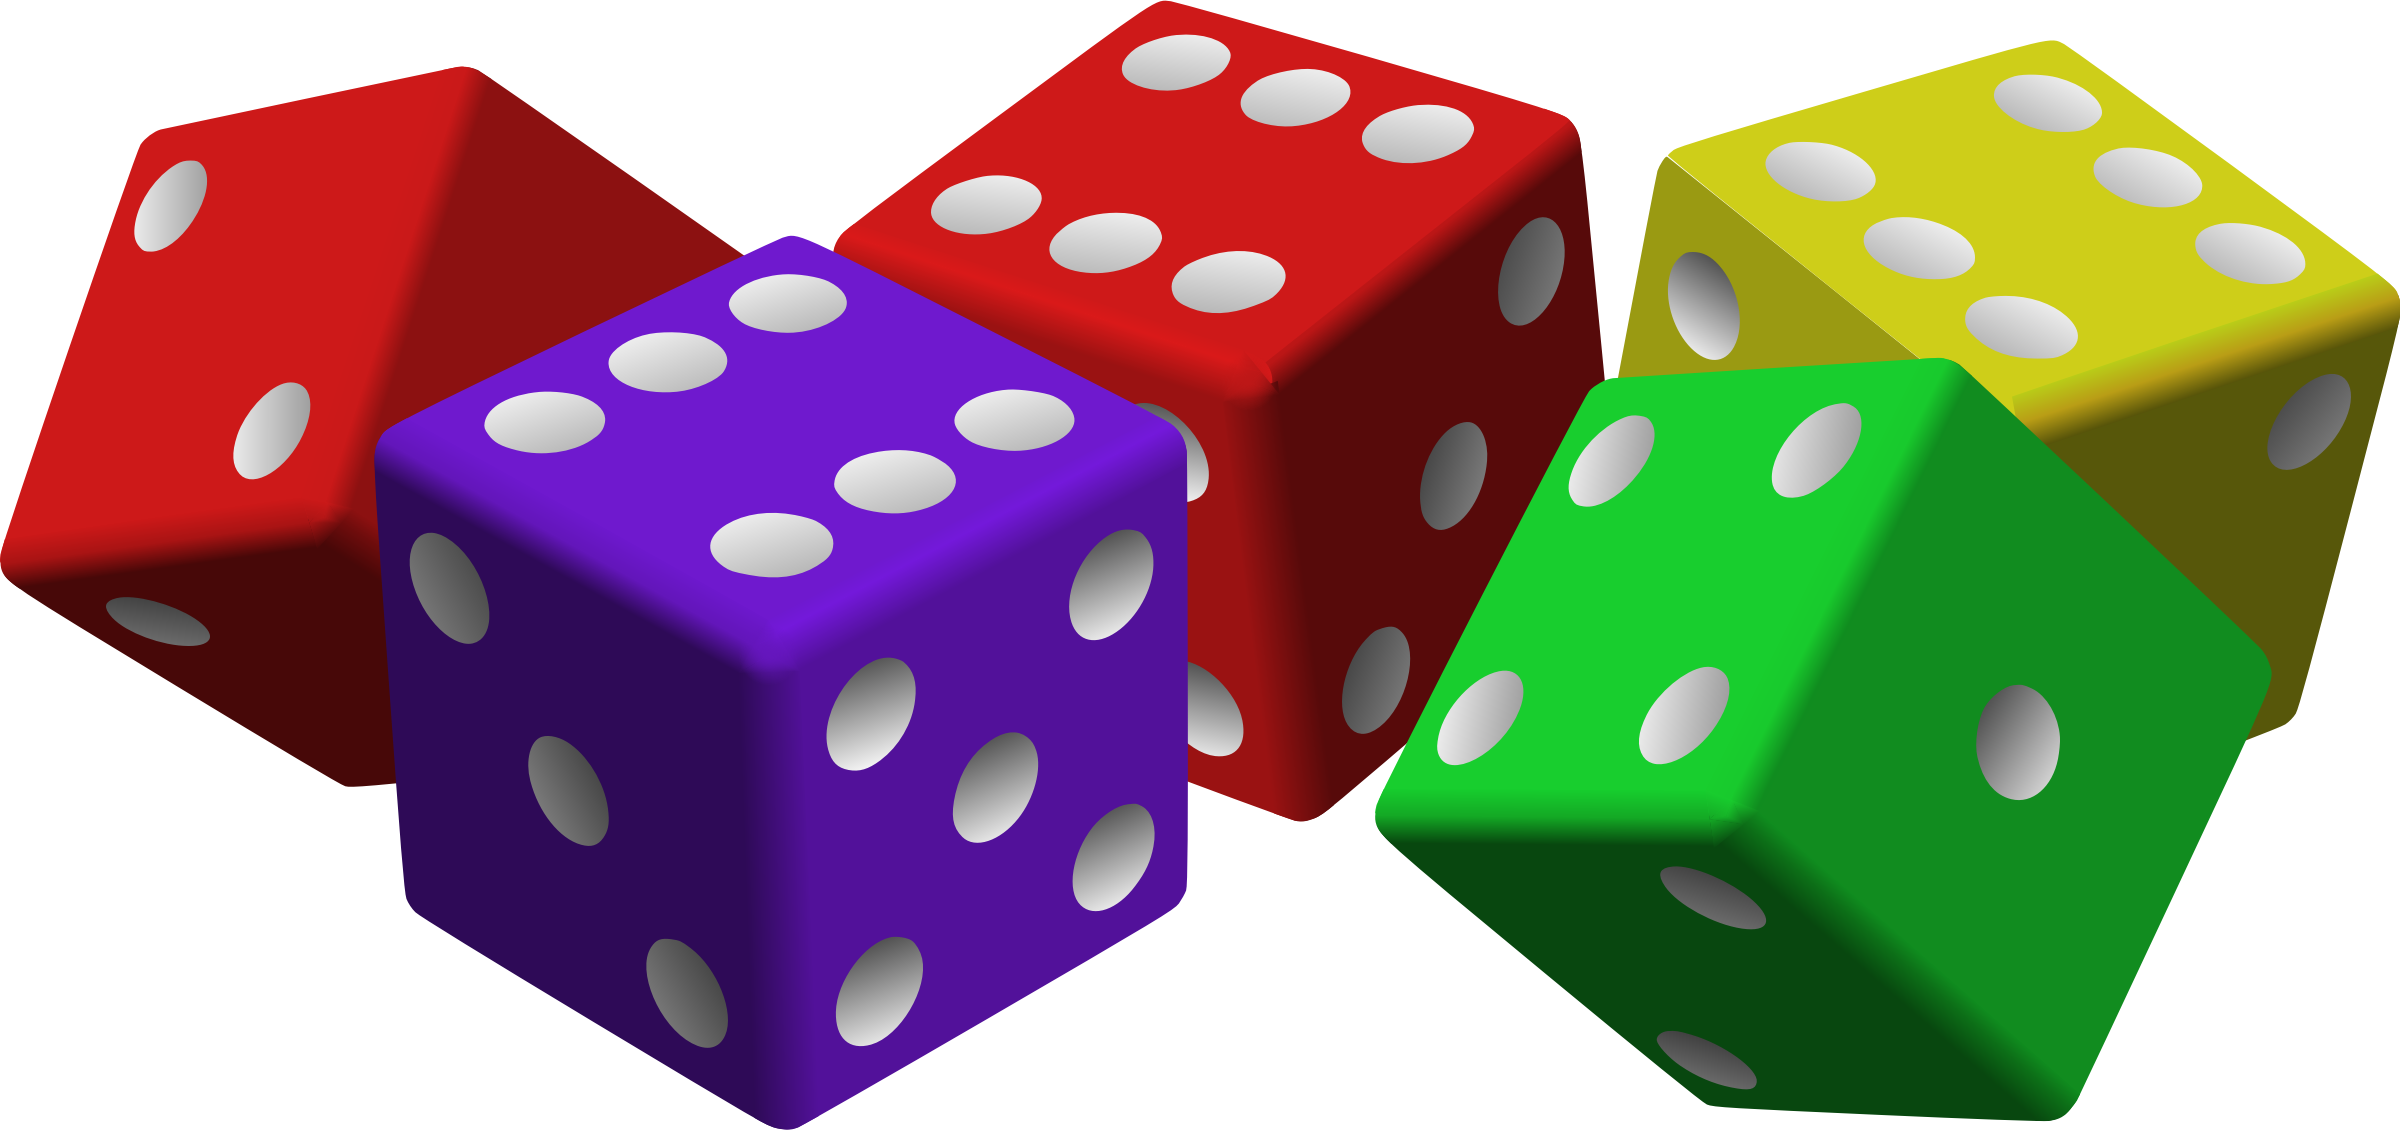 Colored Dice Clip Art